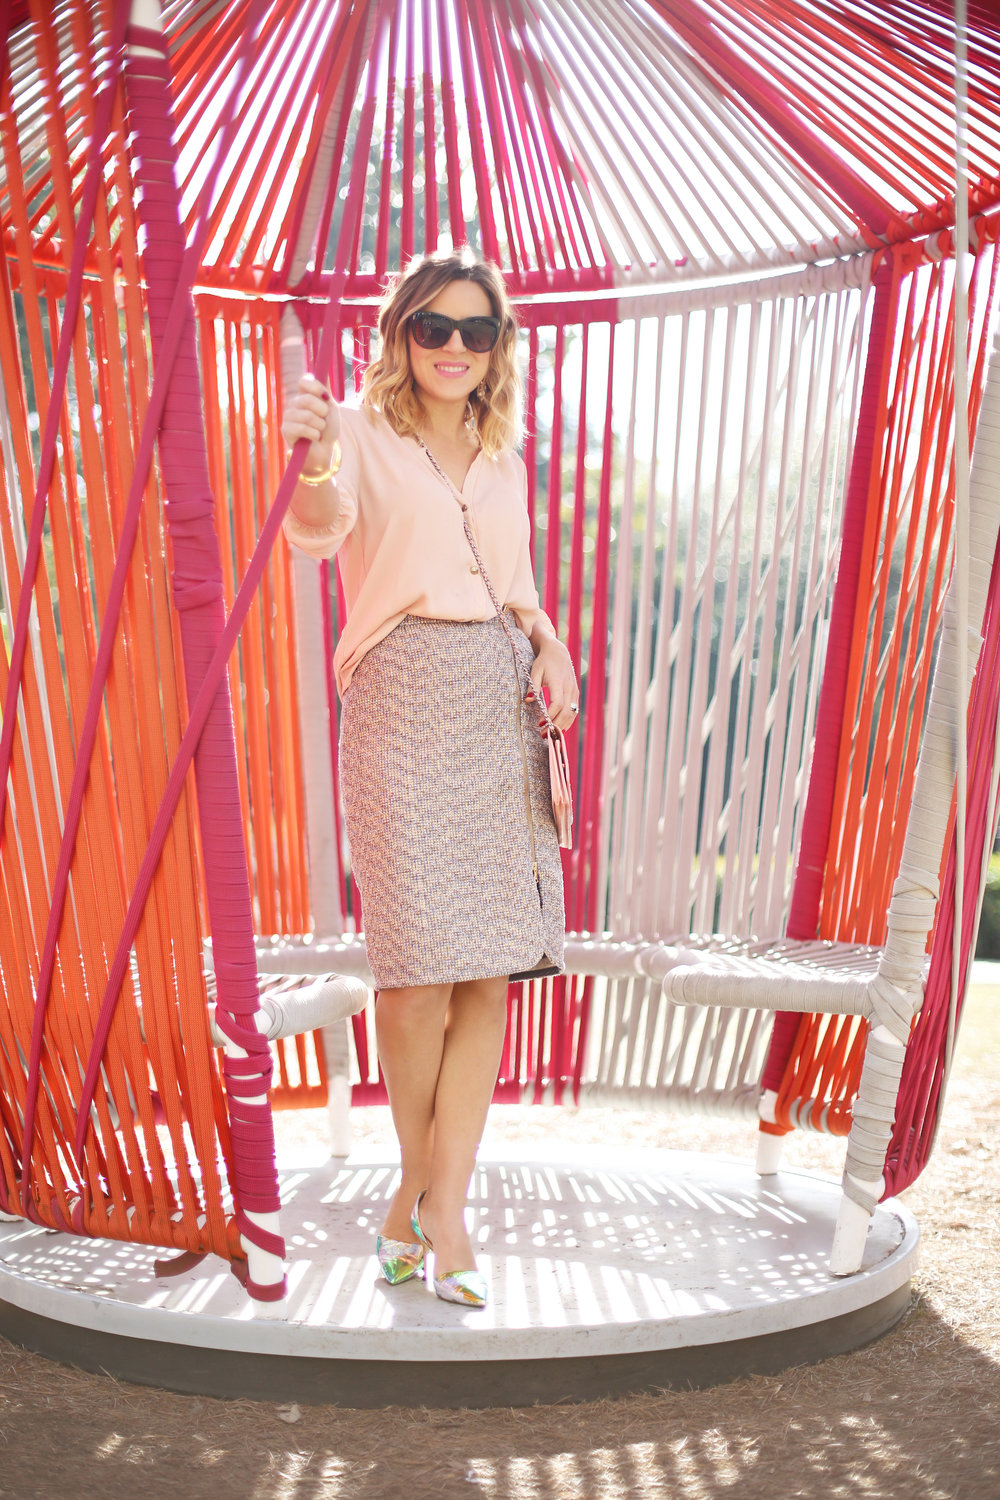 jcrew tweed skirt:julie vos and chanel purse 4.jpg